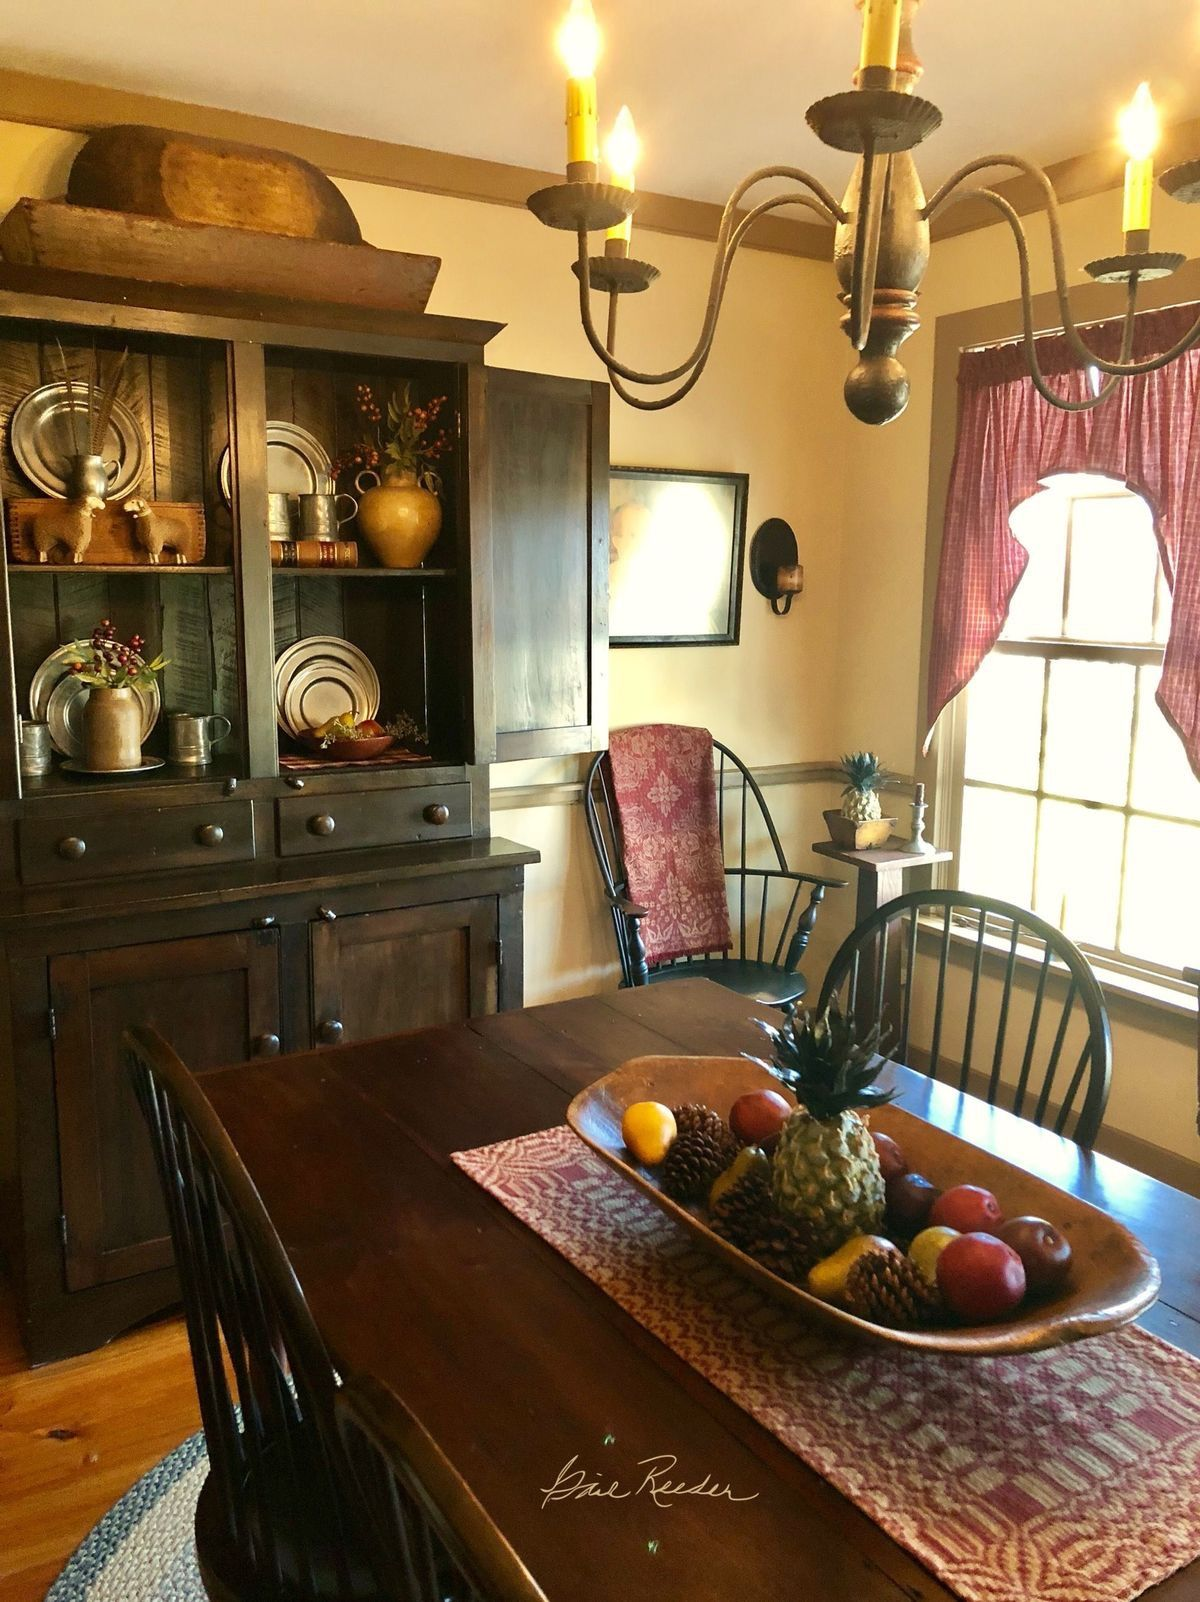 Dining room design decor and furniture also best primitive to use images in rh pinterest